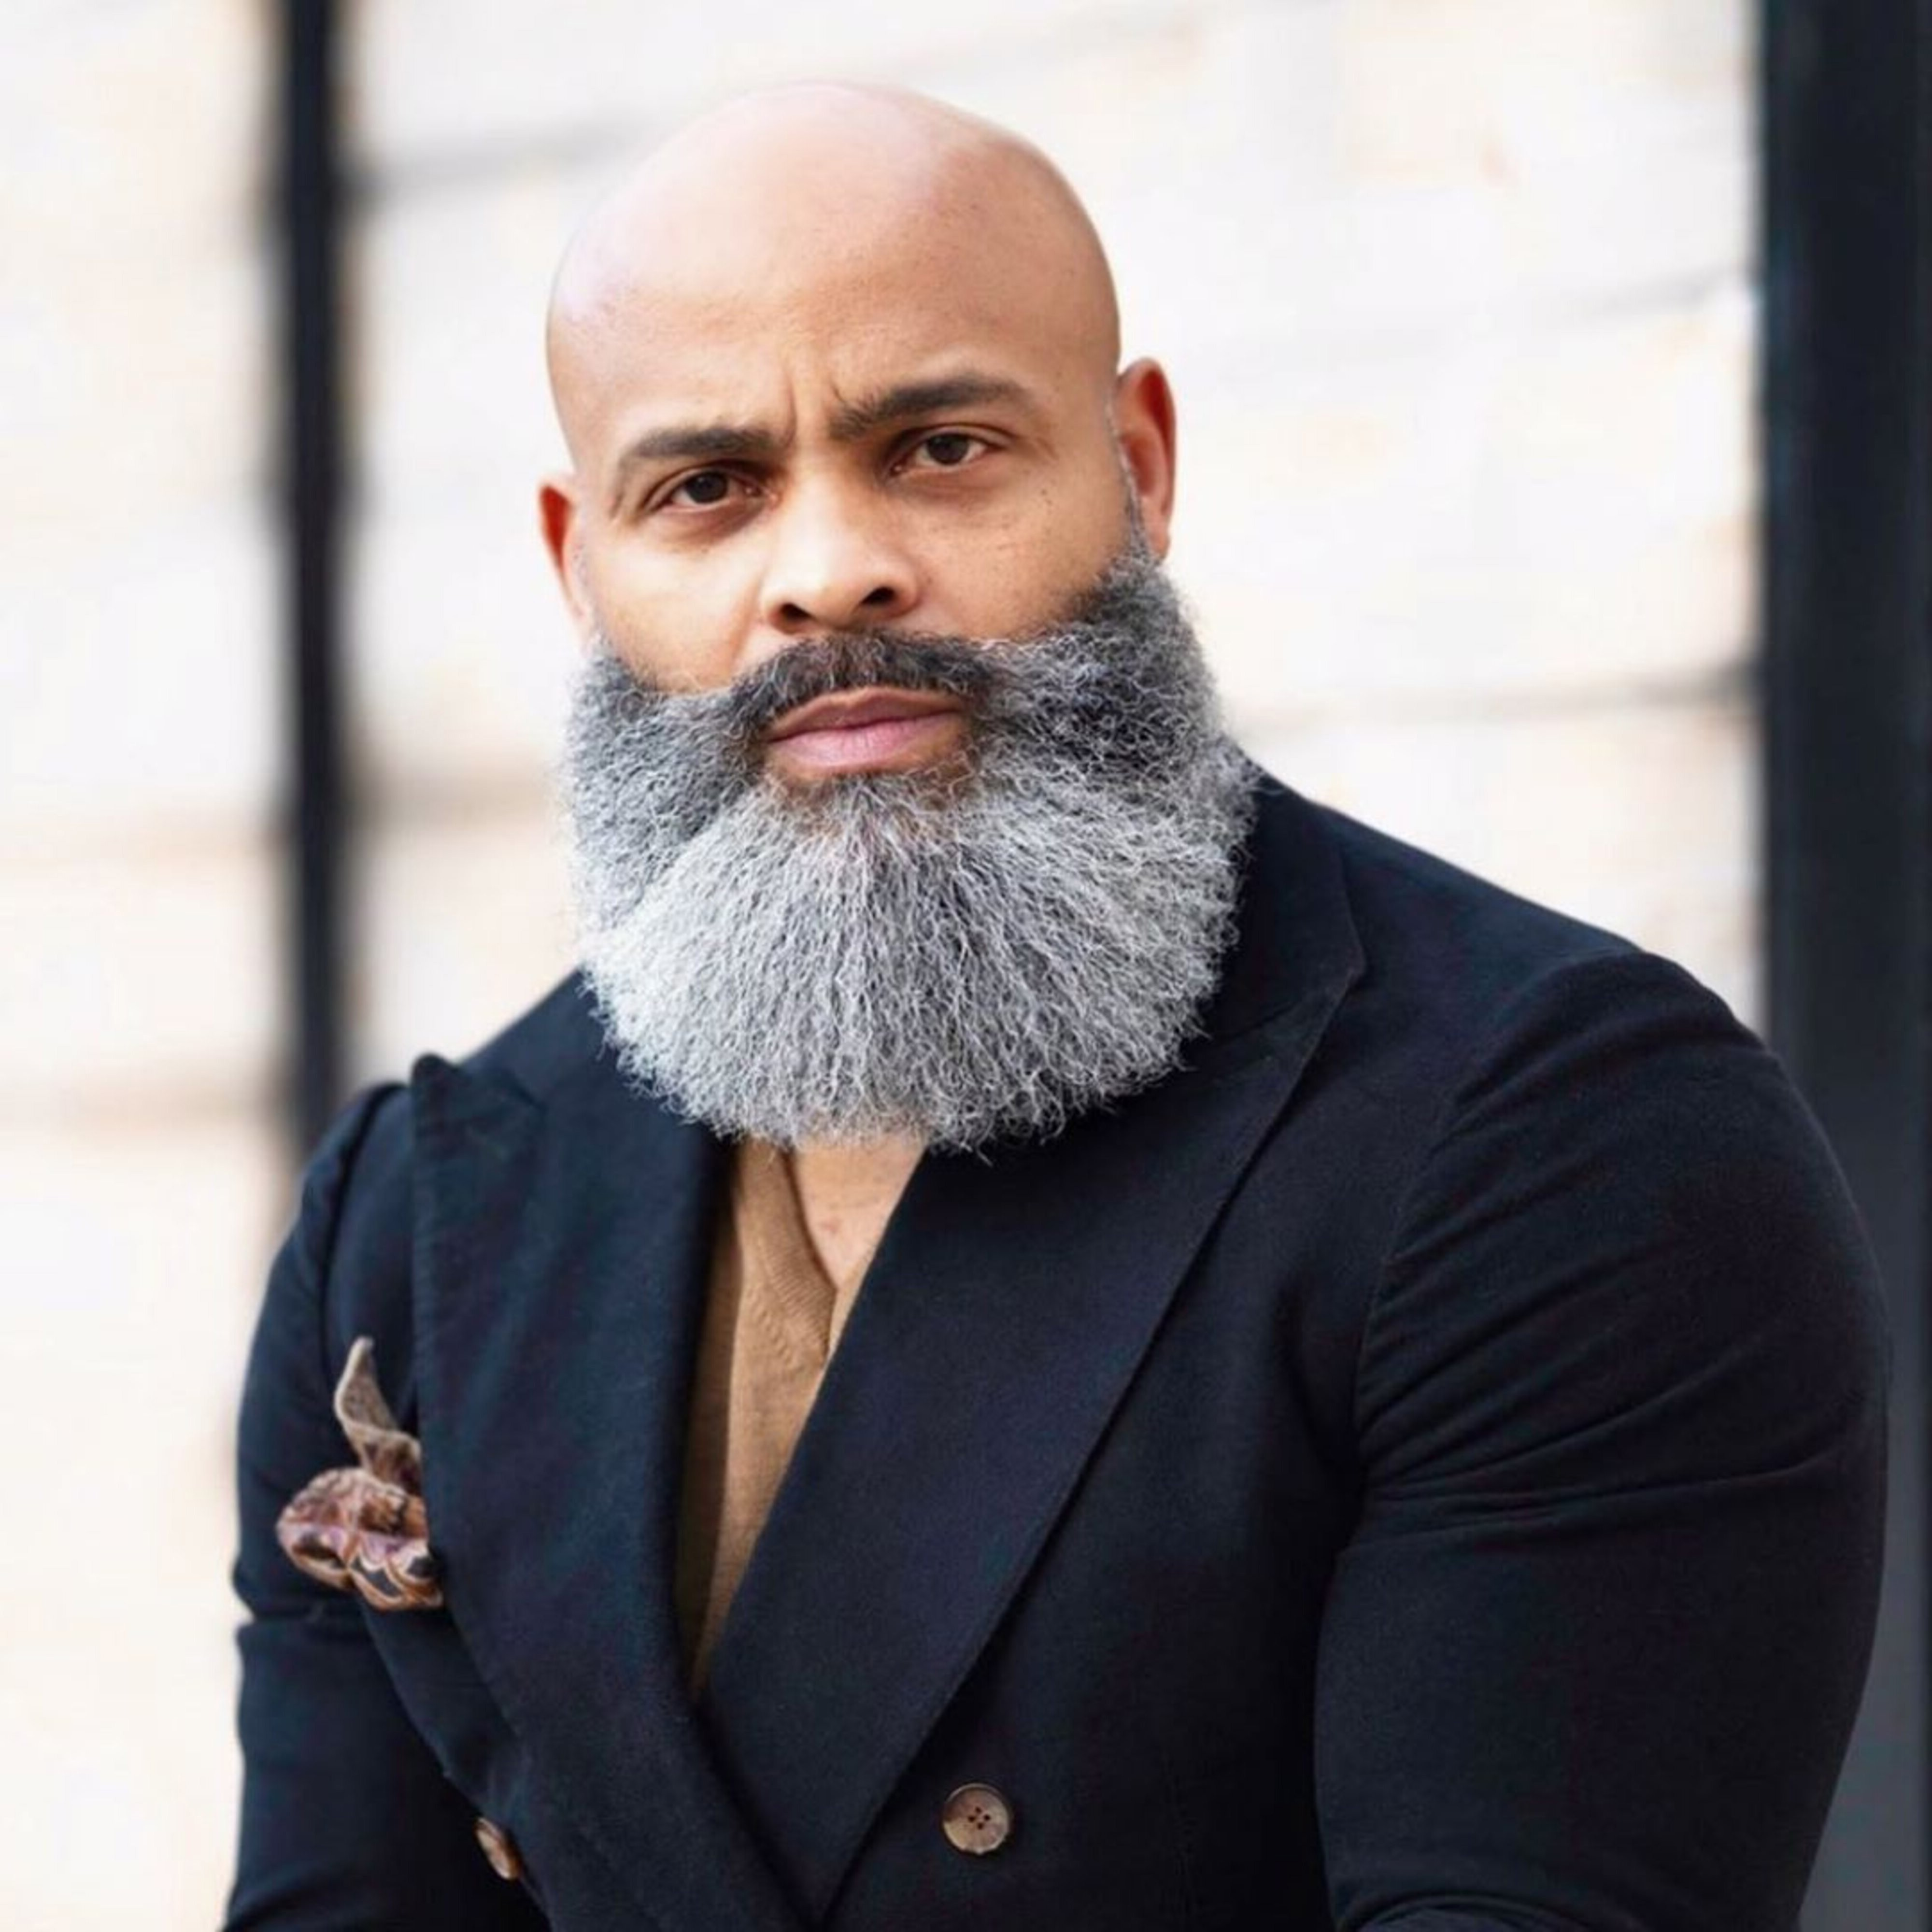 A shaved head style with a long beard.